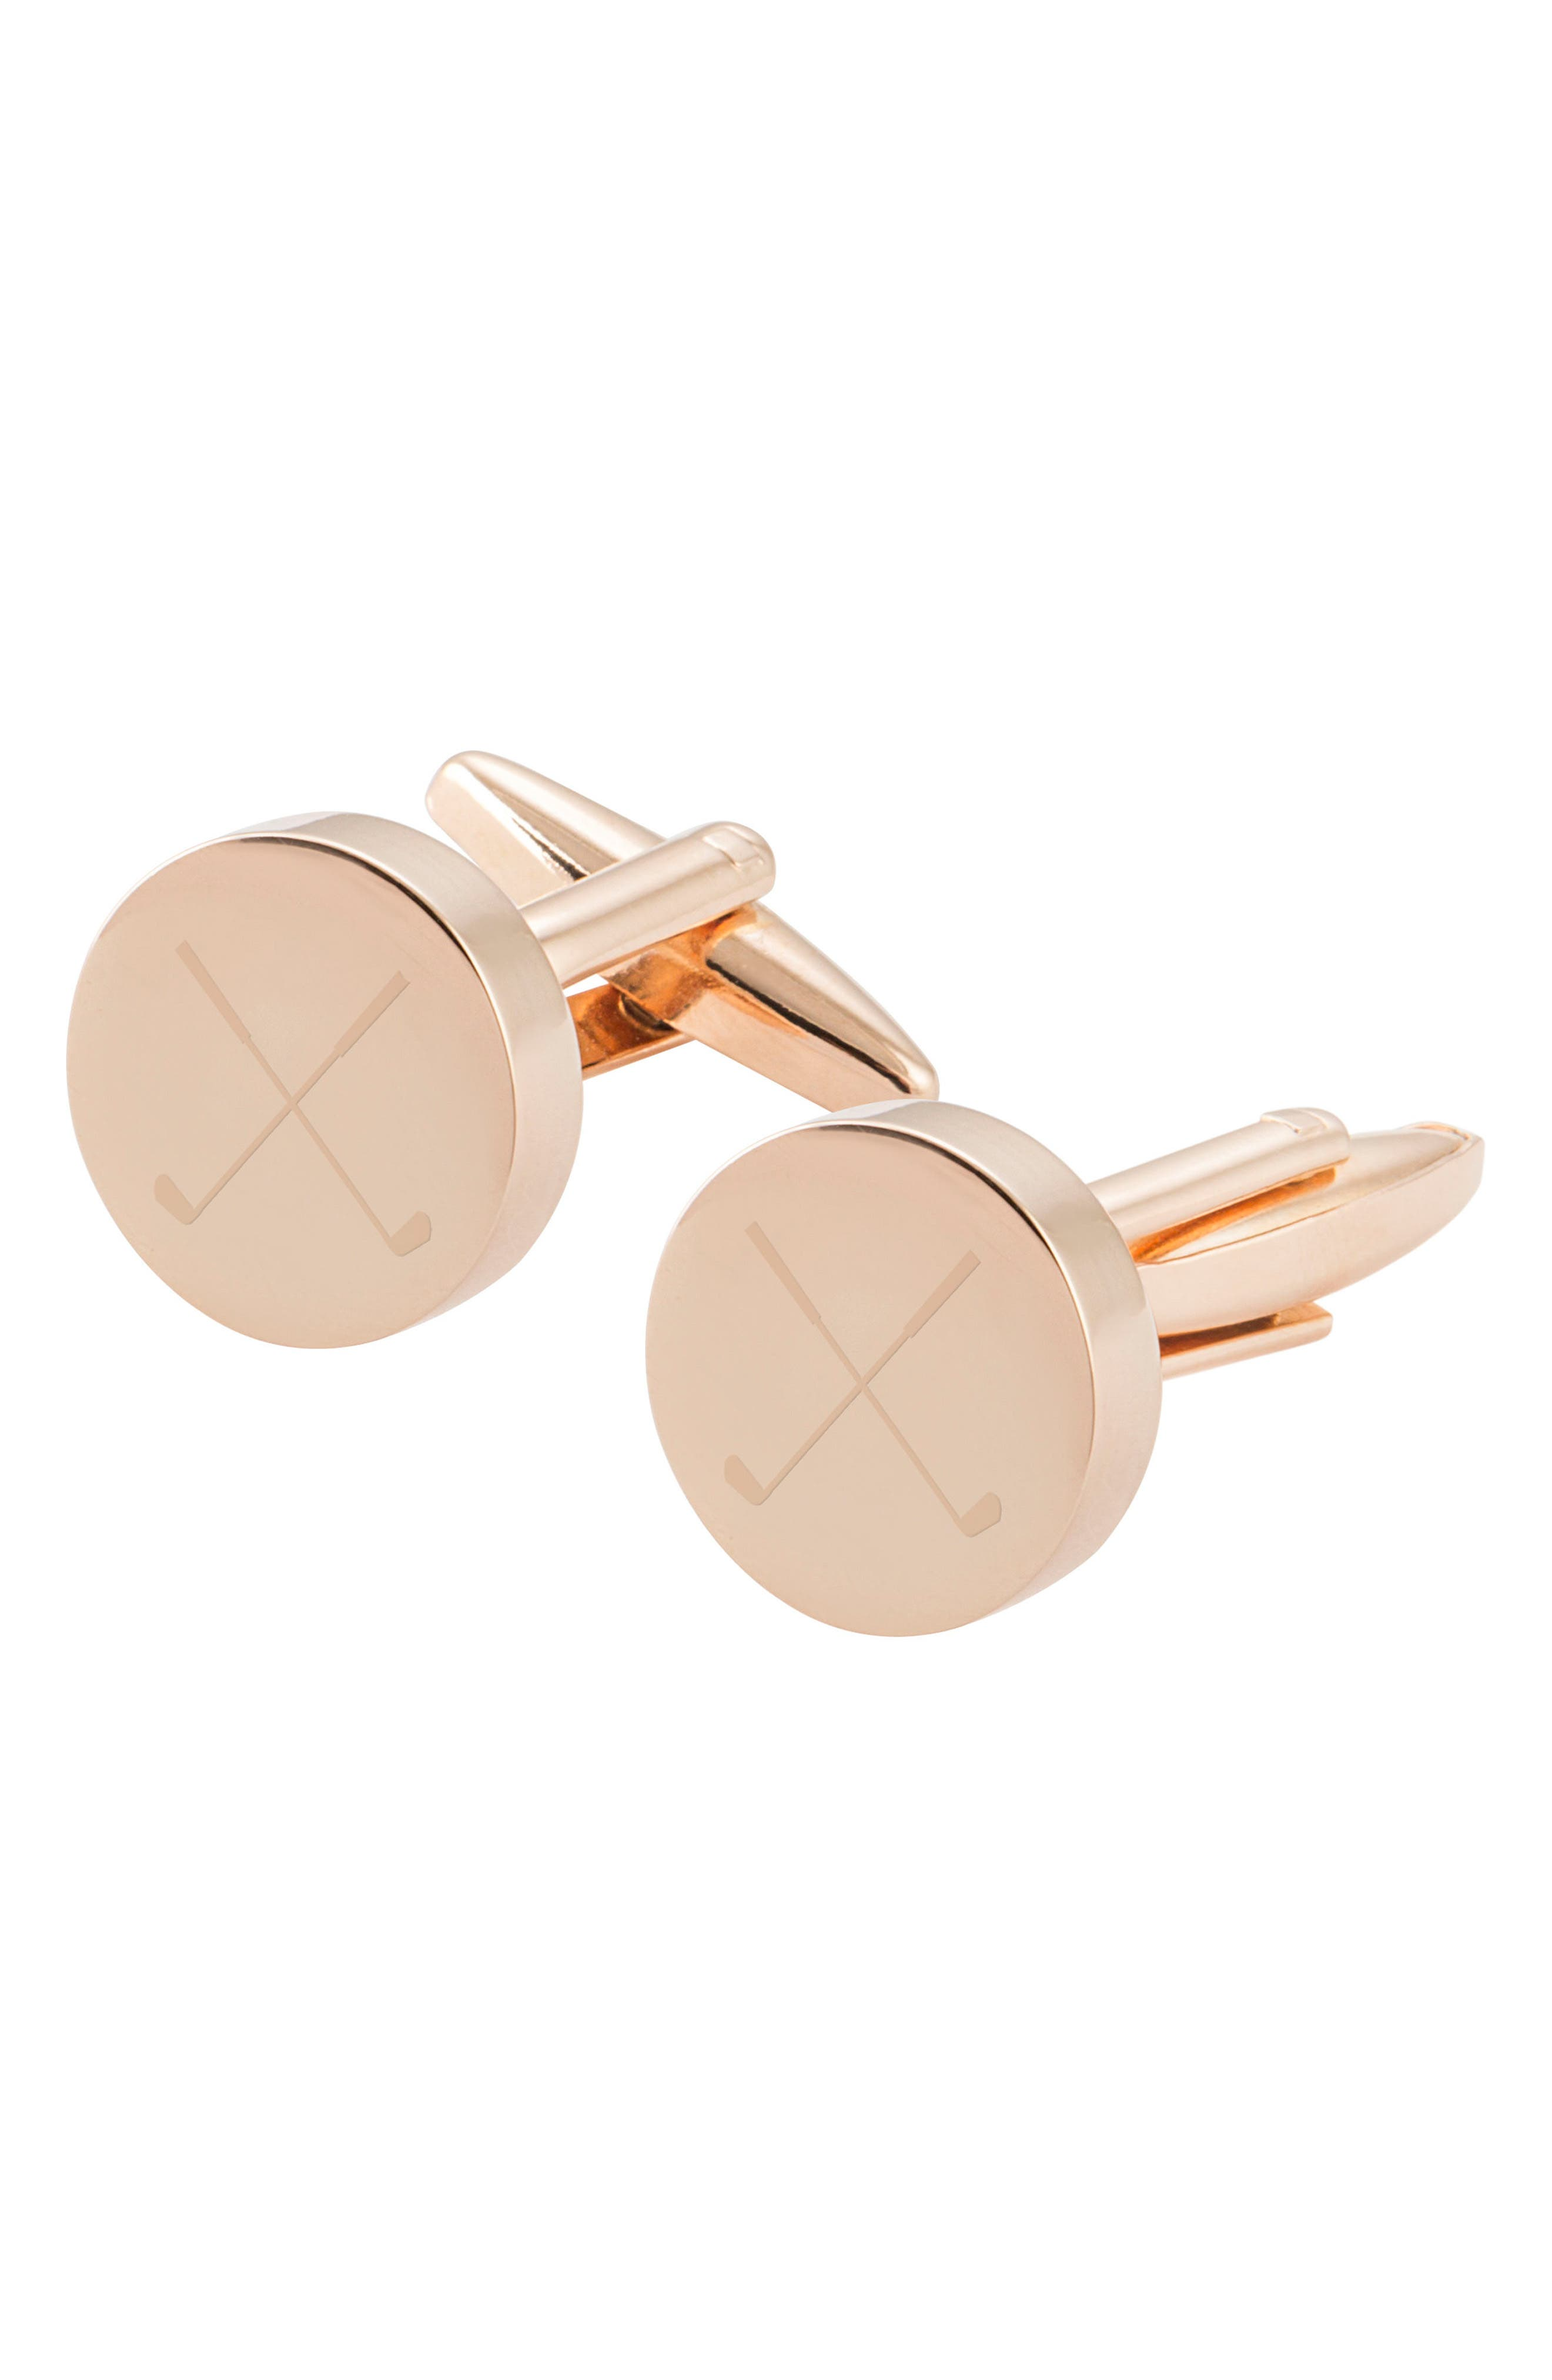 Golf Cuff Links,                             Main thumbnail 1, color,                             Rose Gold